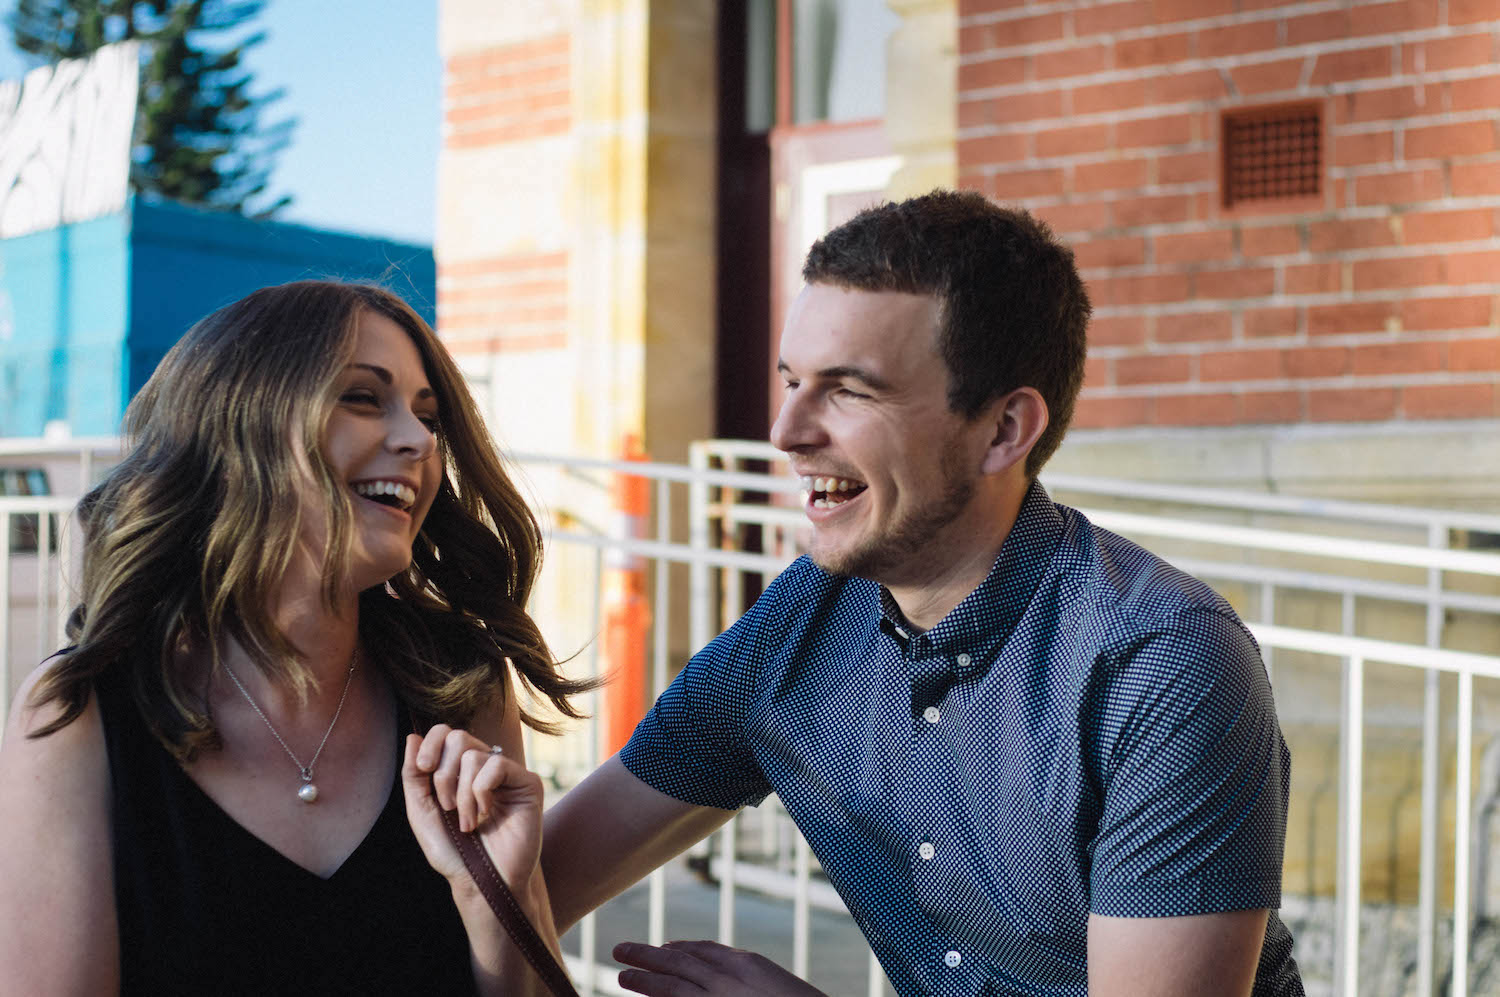 Fremantle Engagement Photographer Glen Kara Laugh